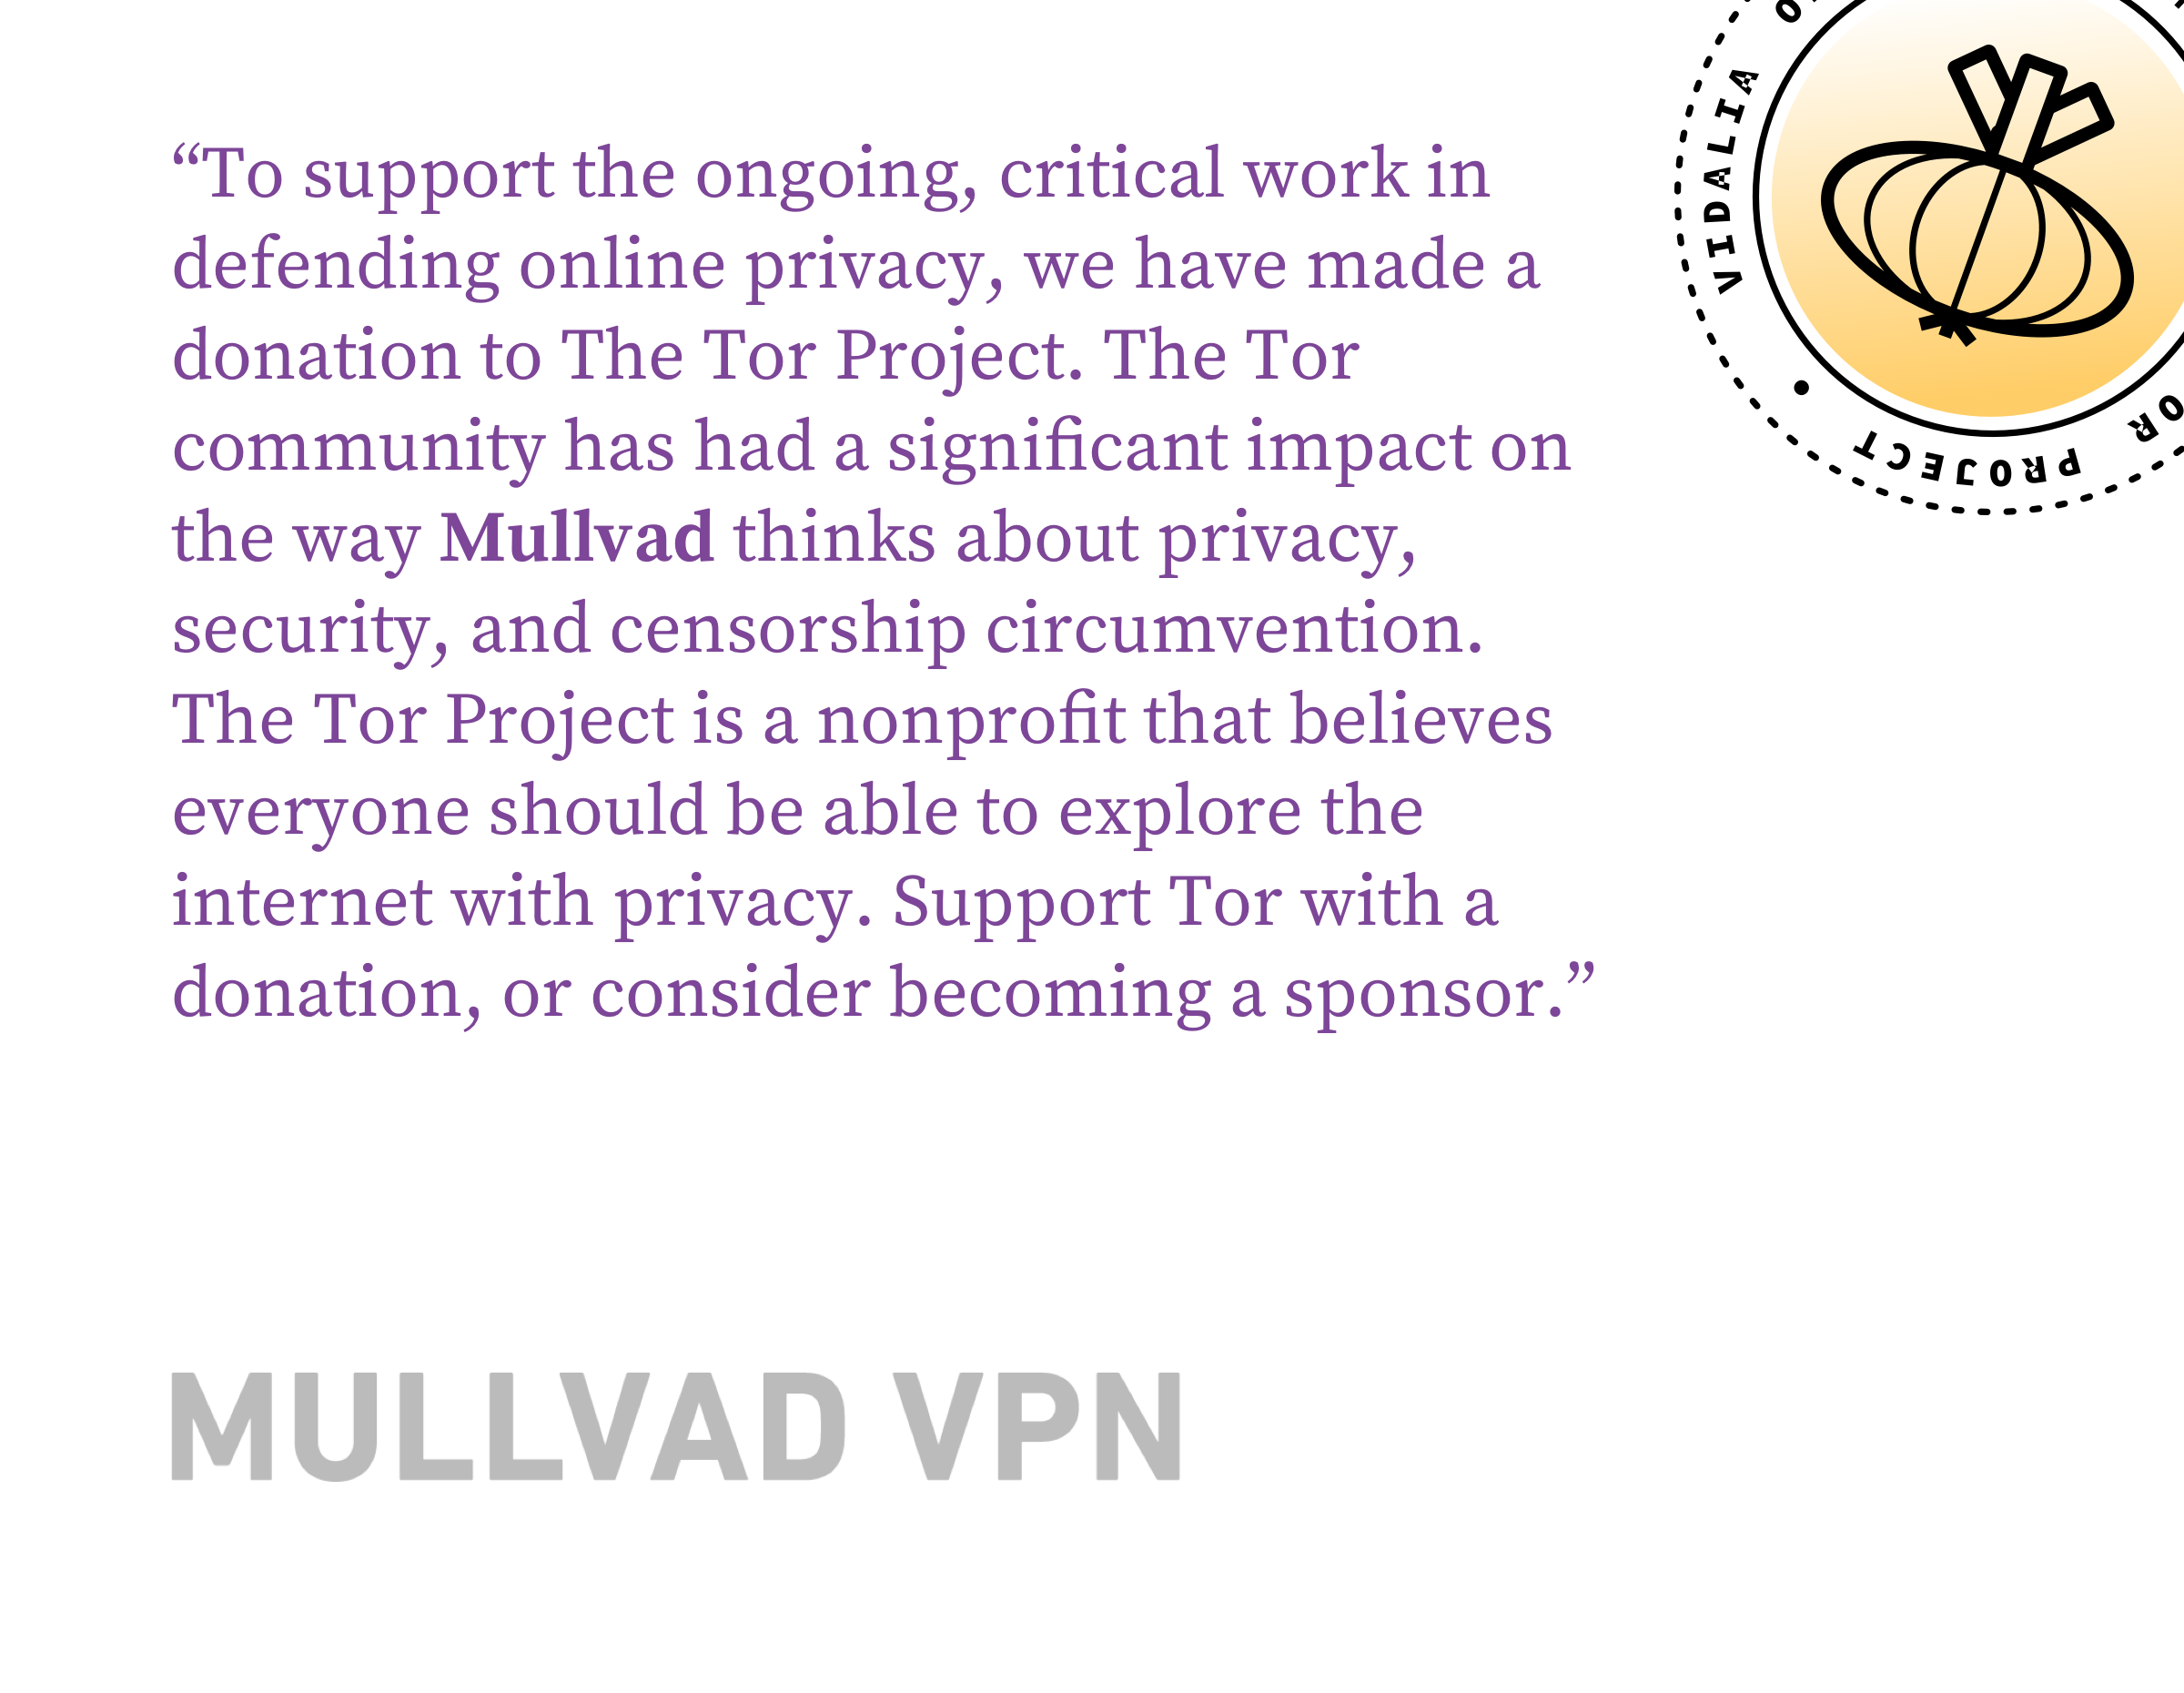 To support the ongoing, critical work in defending online privacy, we have made a donation to The Tor Project. The Tor community has had a significant impact on the way Mullvad thinks about privacy, security, and censorship circumvention. The Tor Project is a nonprofit that believes everyone should be able to explore the internet with privacy. Support Tor with a donation, or consider becoming a sponsor.